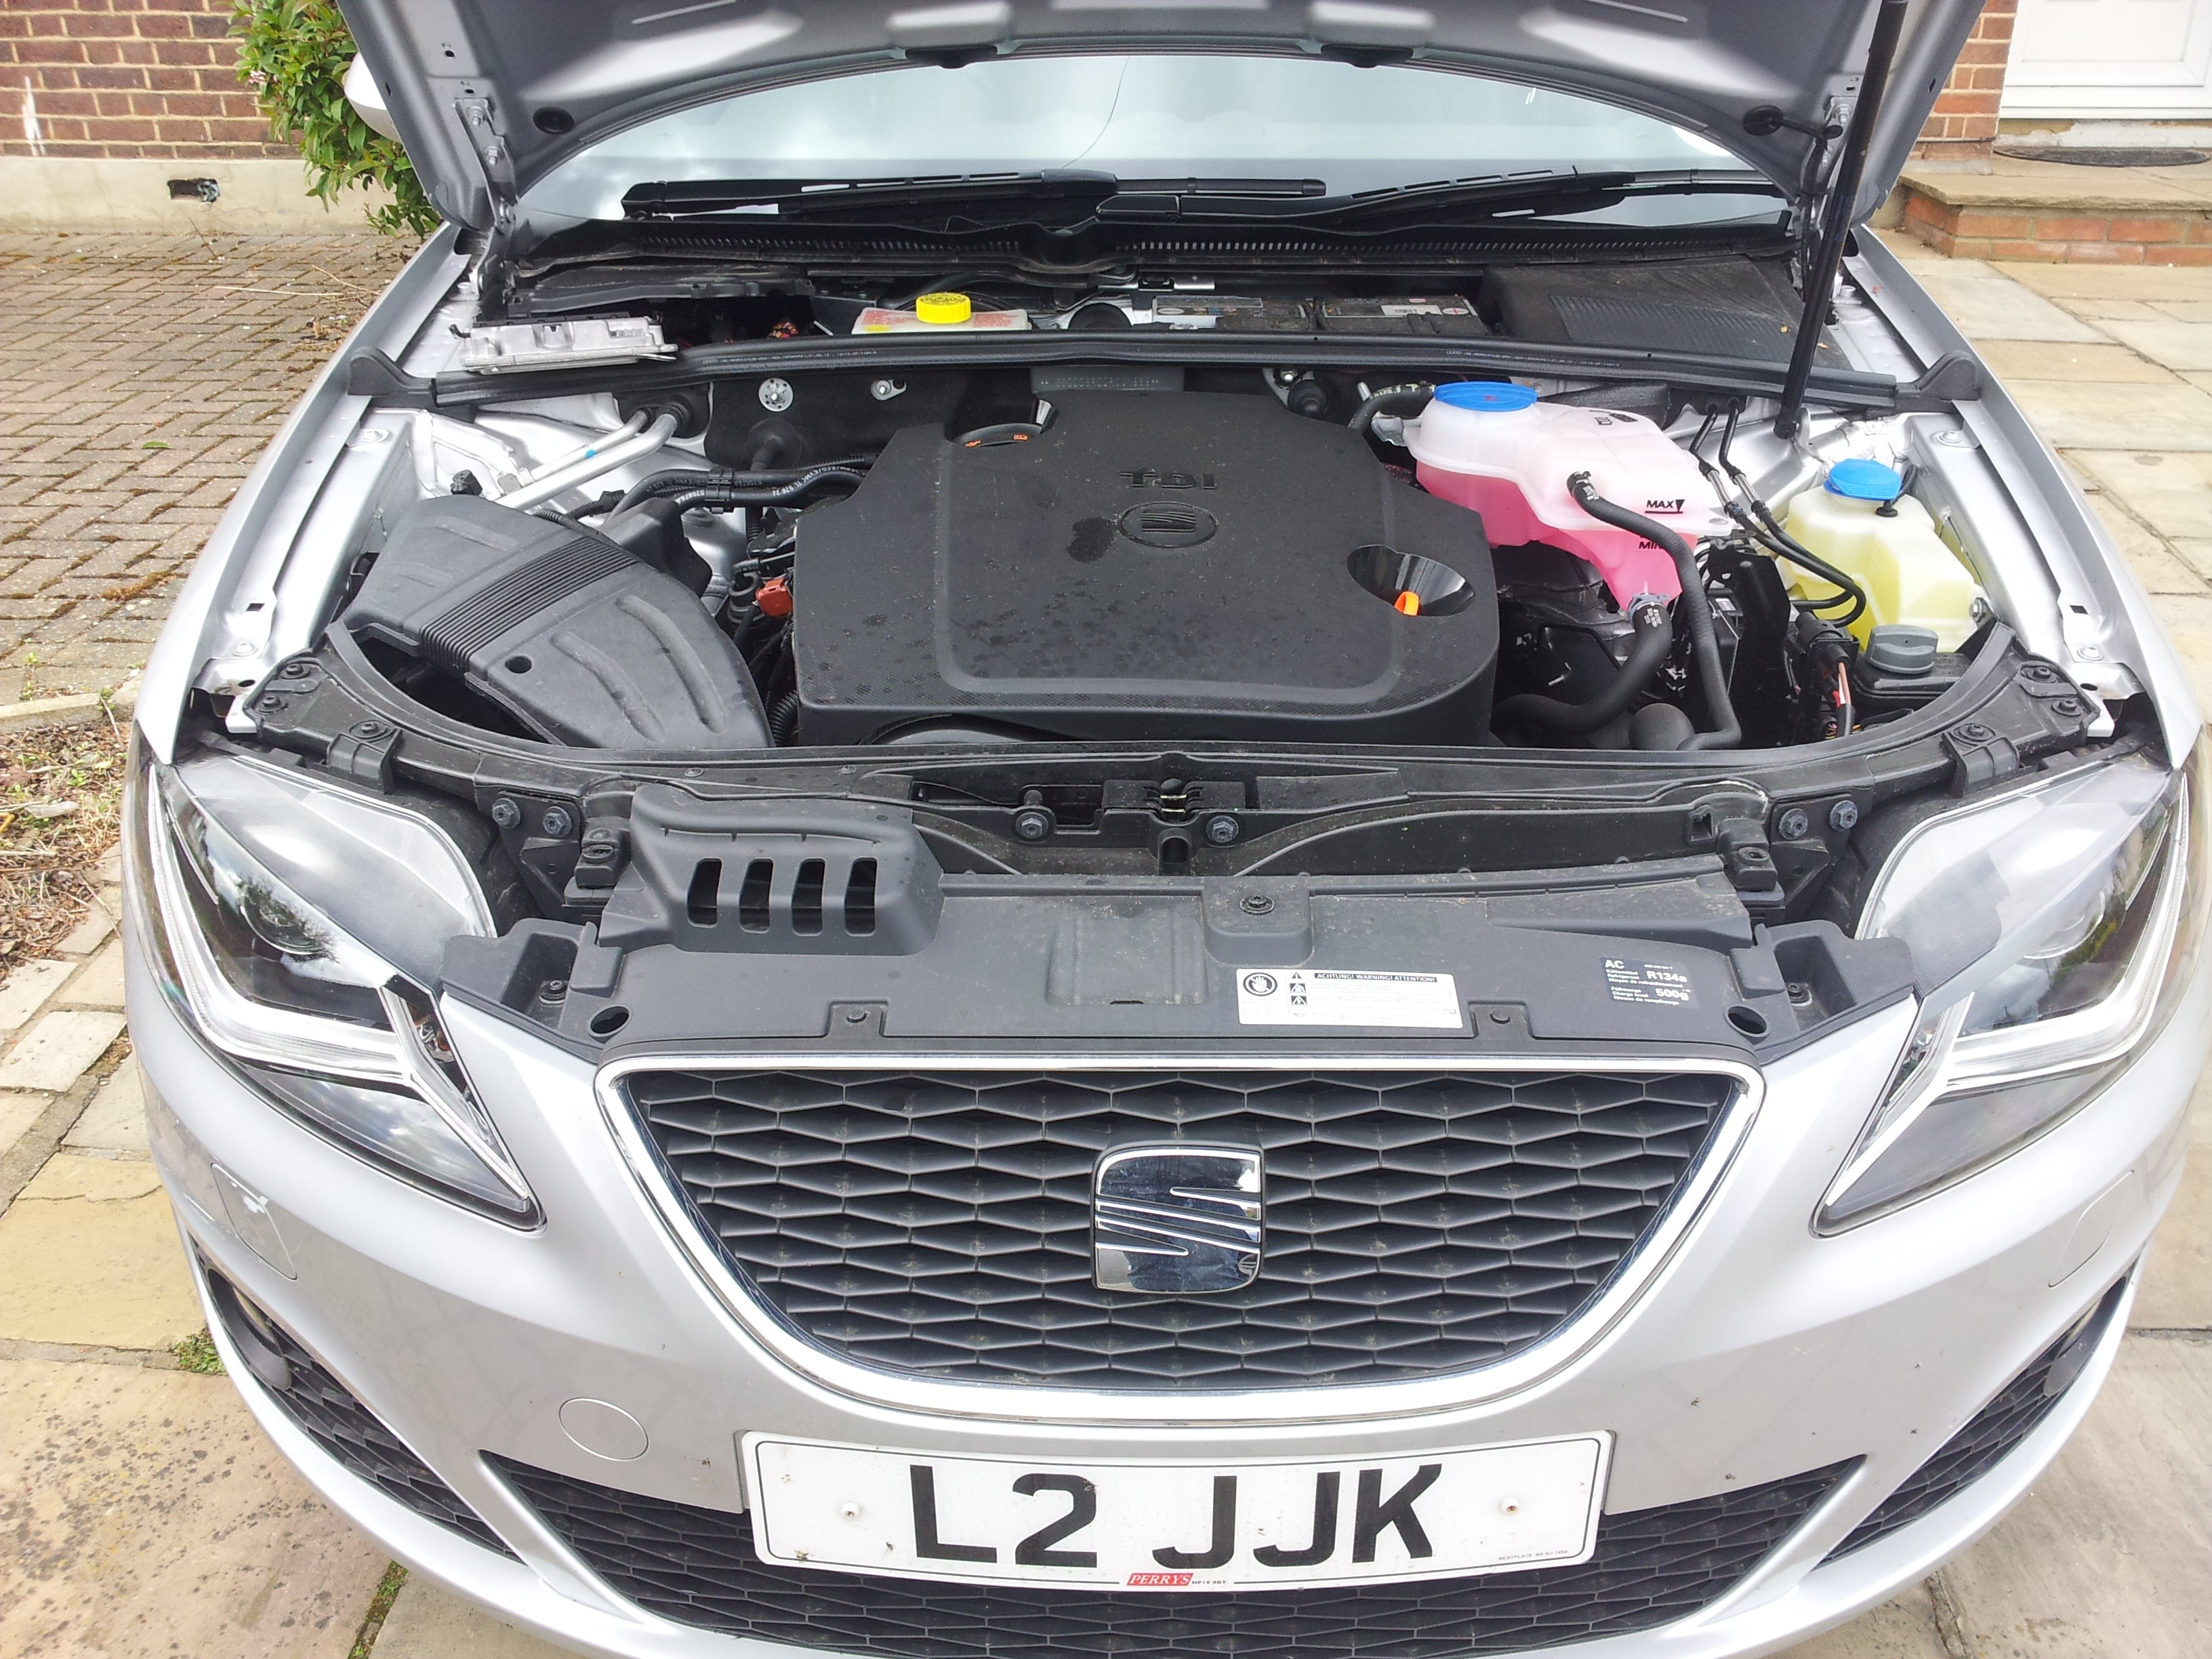 seat exeo 2 0 tdi tuning ecu remapping diesel. Black Bedroom Furniture Sets. Home Design Ideas